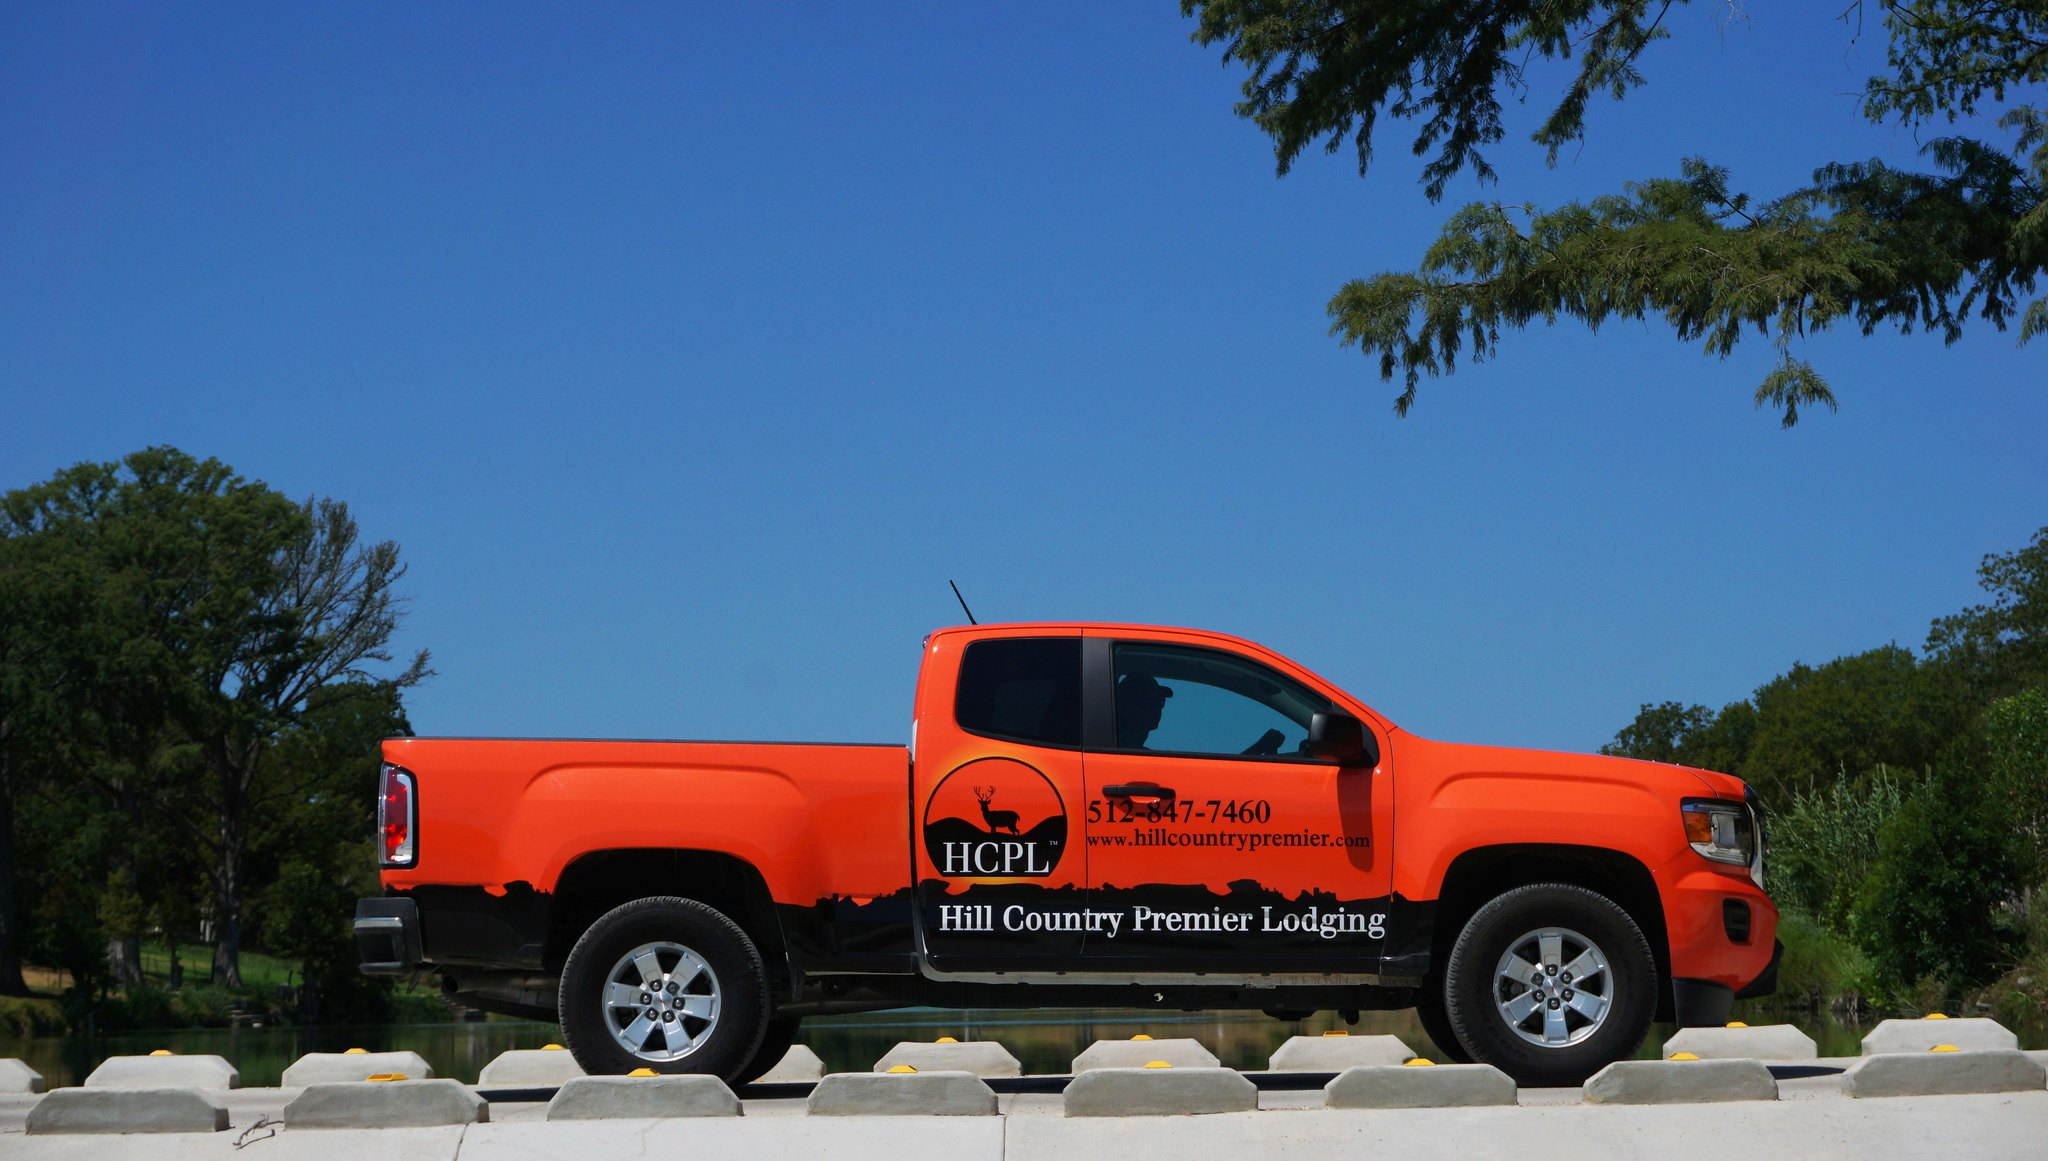 HCPL maintenance trucks are out in the field everyday working on properties